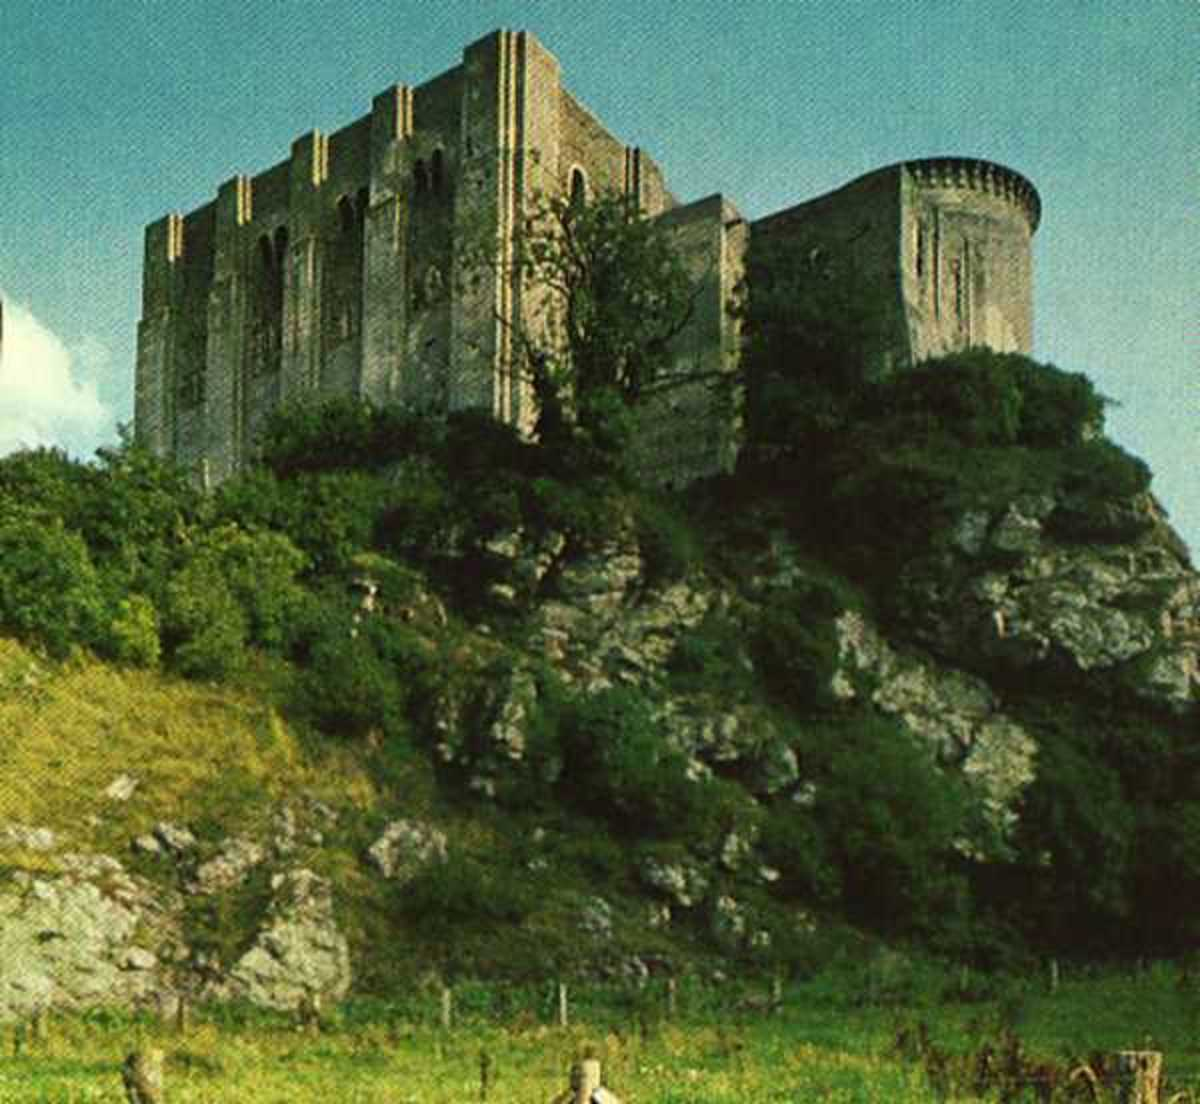 Falaise Castle, where William fitzRobert (Duke William) was born and where William fitzOsbern spent much of his young life